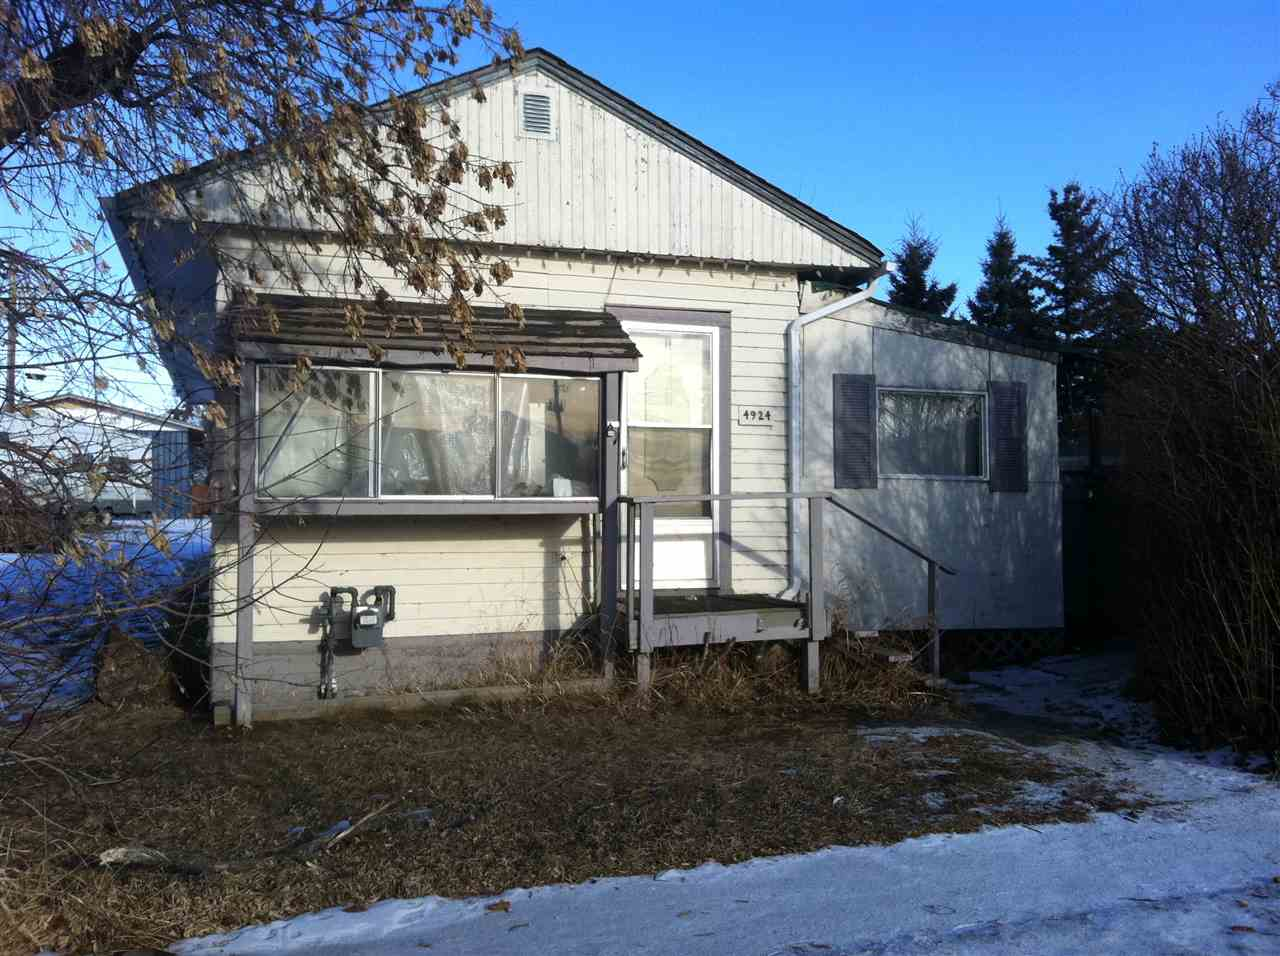 Perfect starter home or Add to your Revenue properties. Newer shingles and furnace. Situated on 2 lots with open back yard to the lane. Space for the RV and toys. Located in the community of Holden. Easy commute to Vegreville, Viking or Tofield.